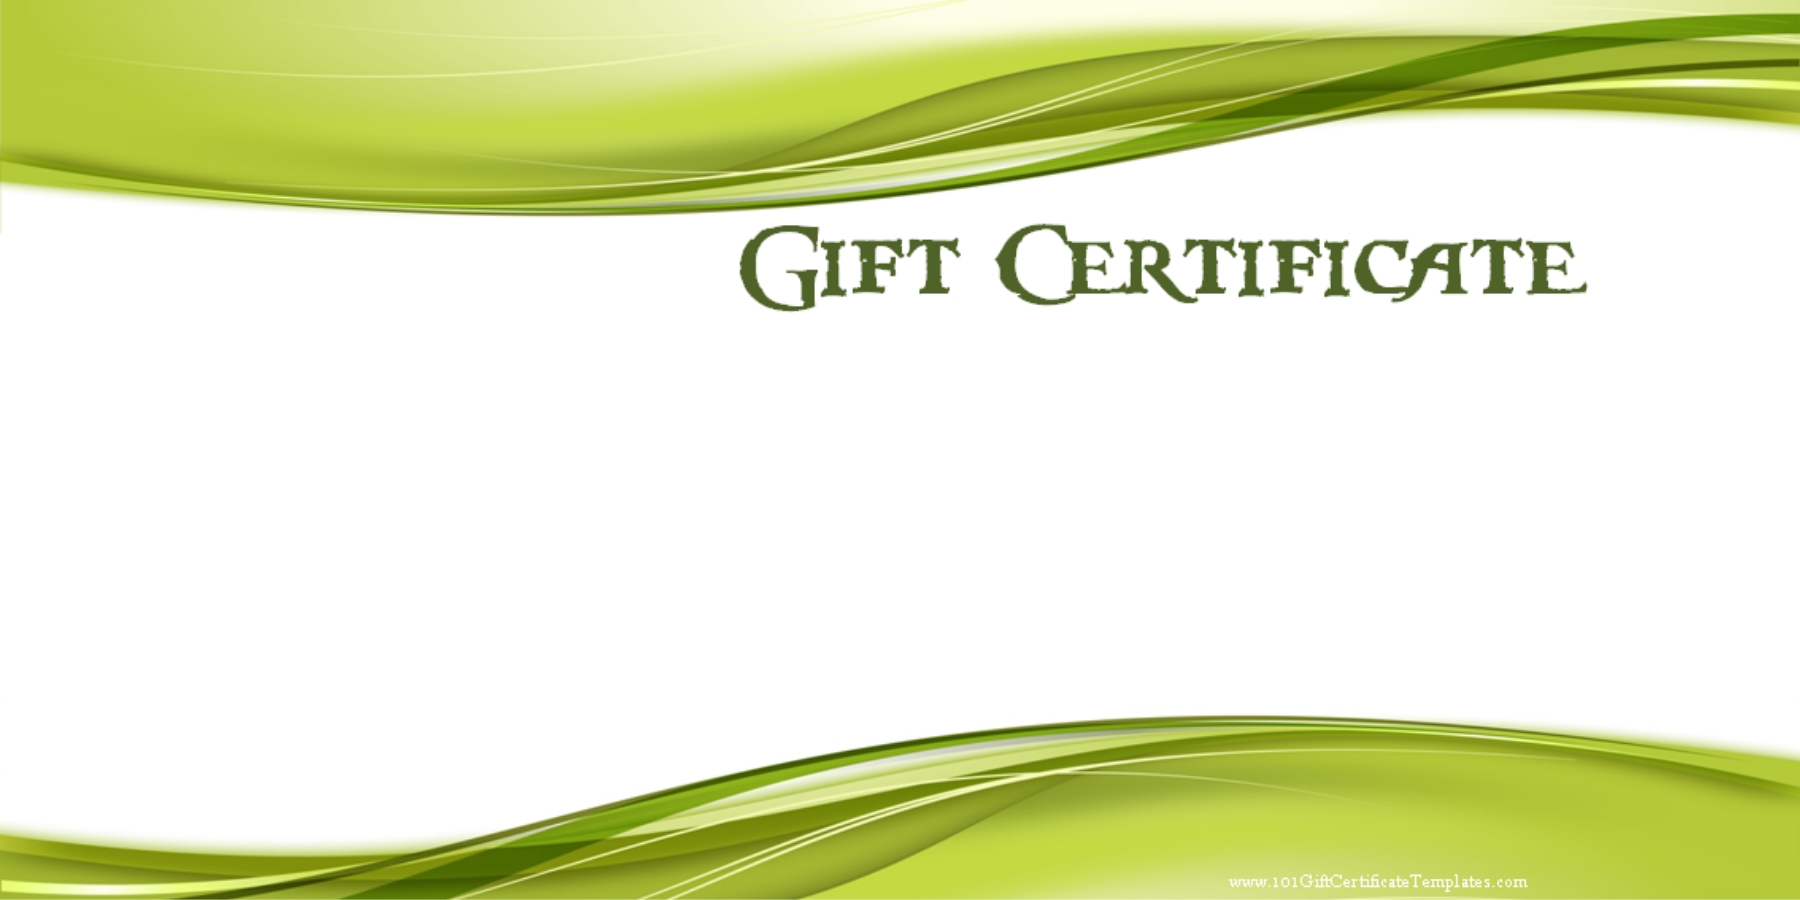 Gift certificate template fotolip rich image and wallpaper gift certificate template alramifo Gallery